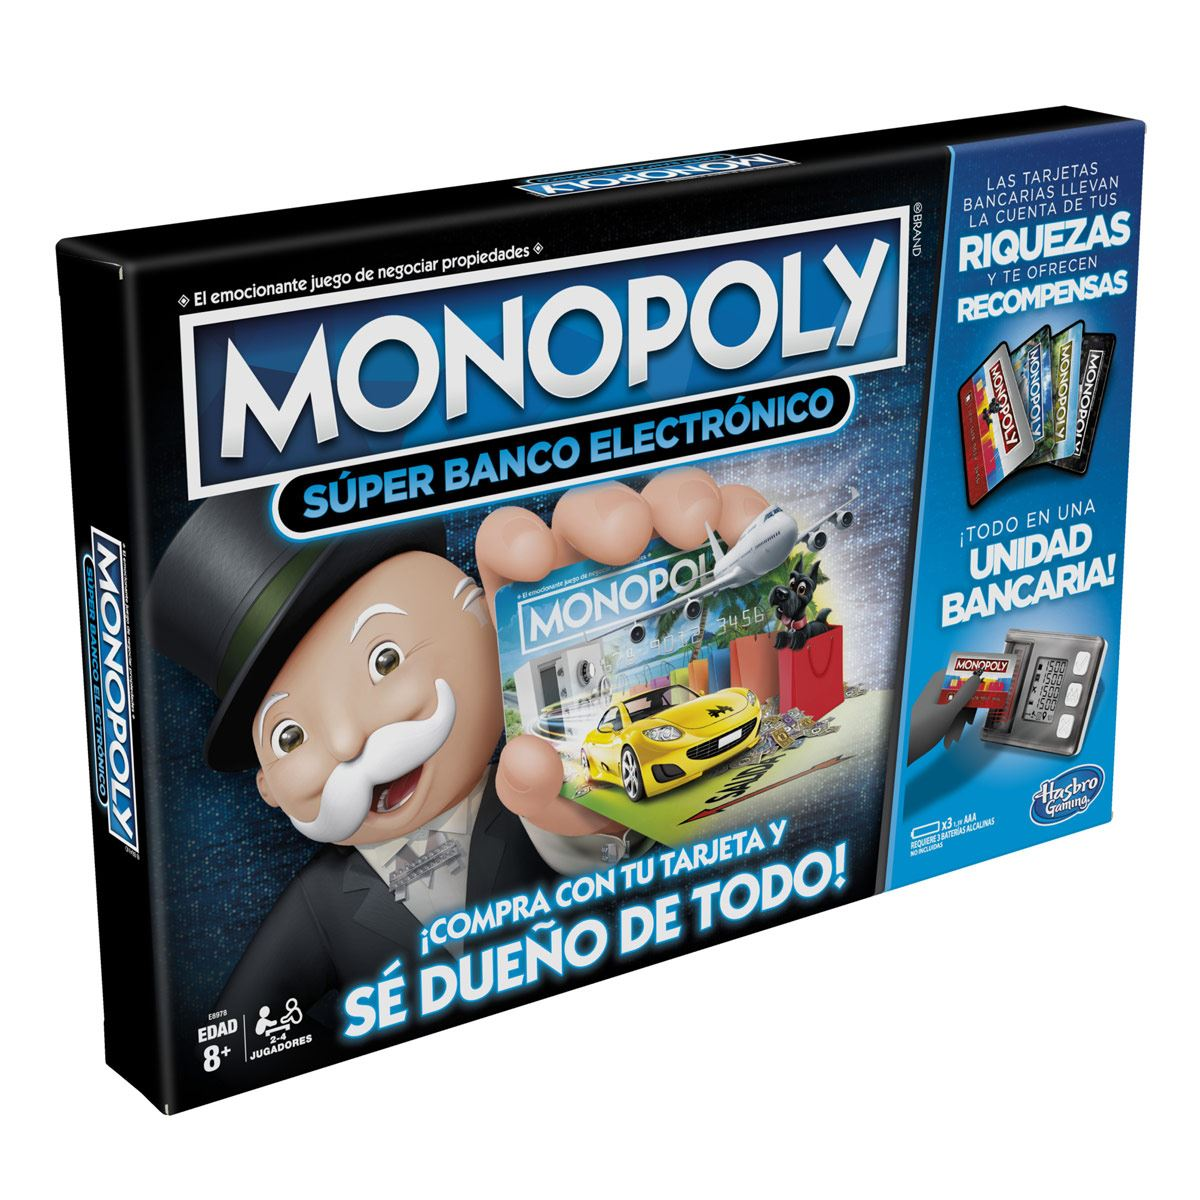 Juego Monopoly Recompensas Exclusivas